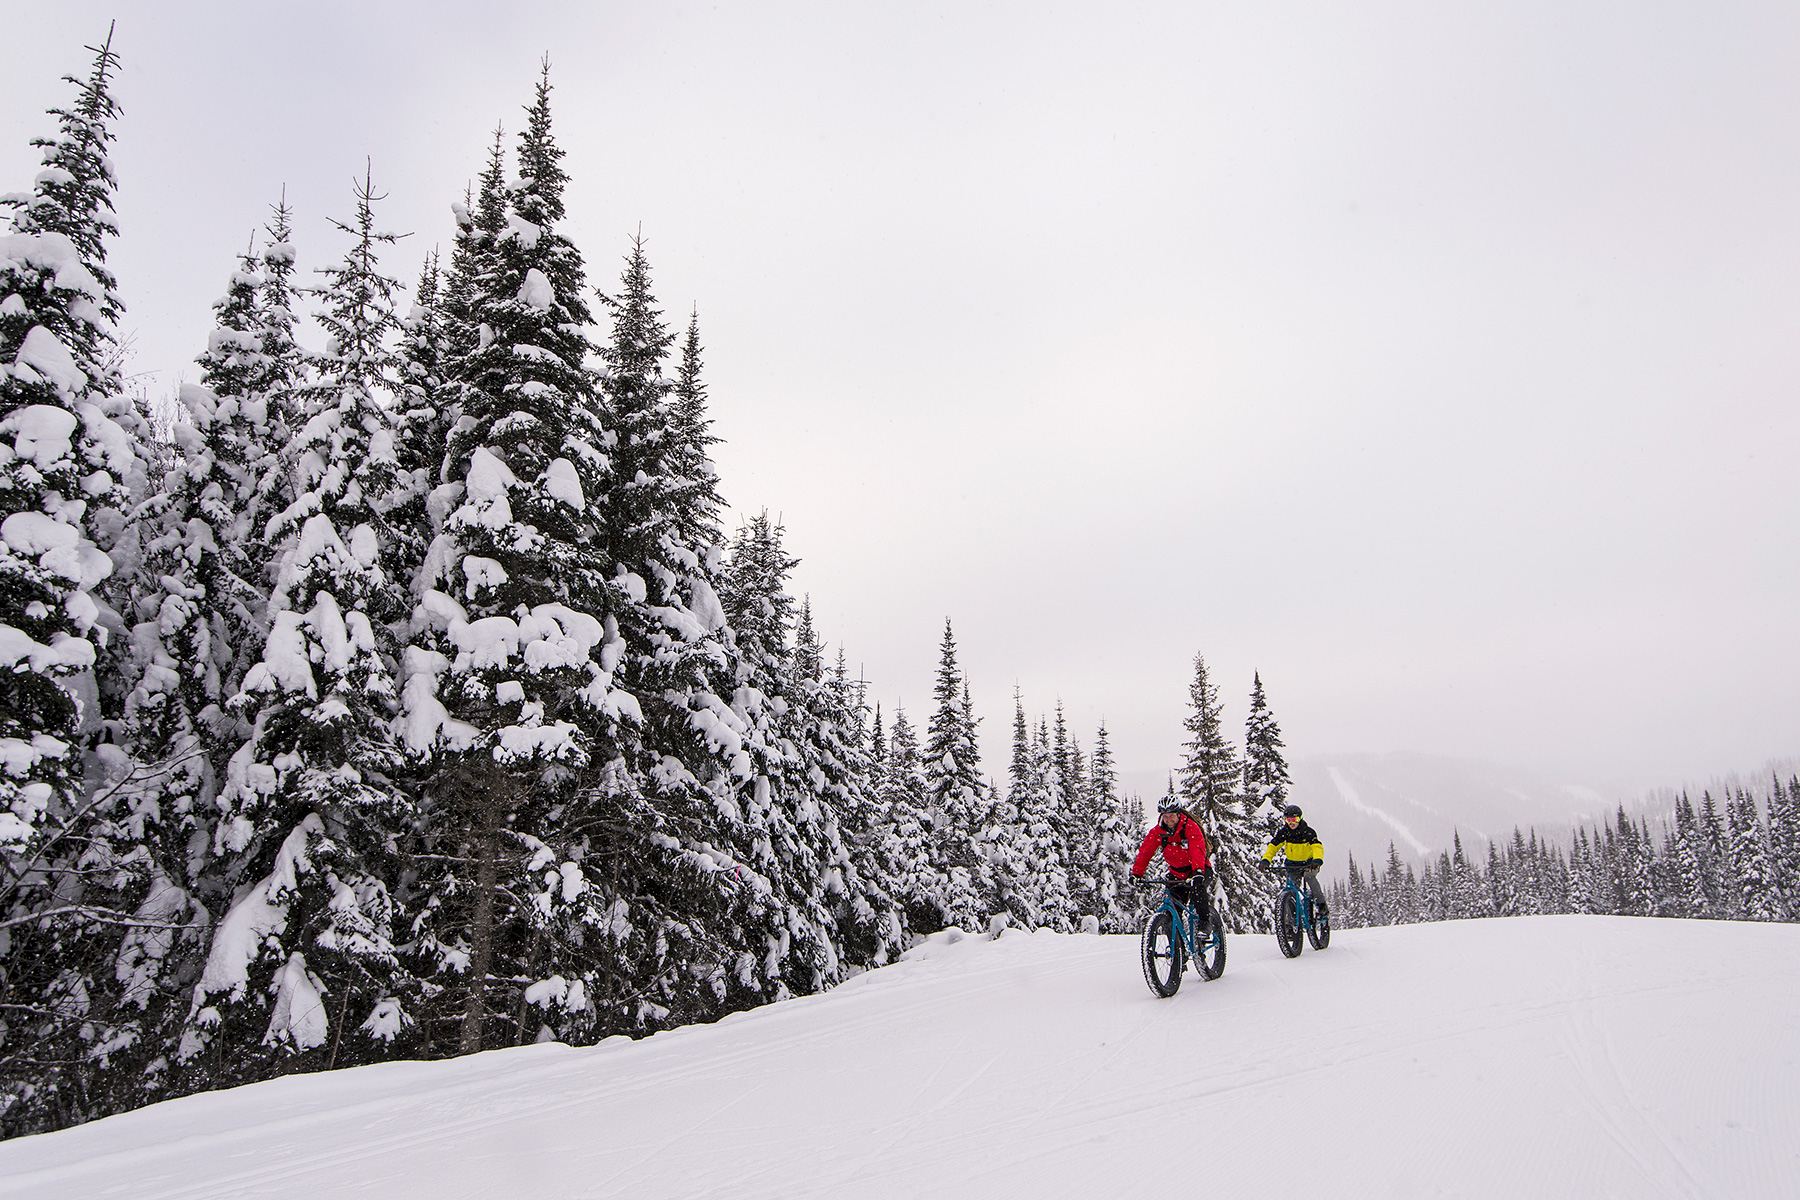 Exploring the snowy forests surrounding Sun Peaks is easy on a fat bike.